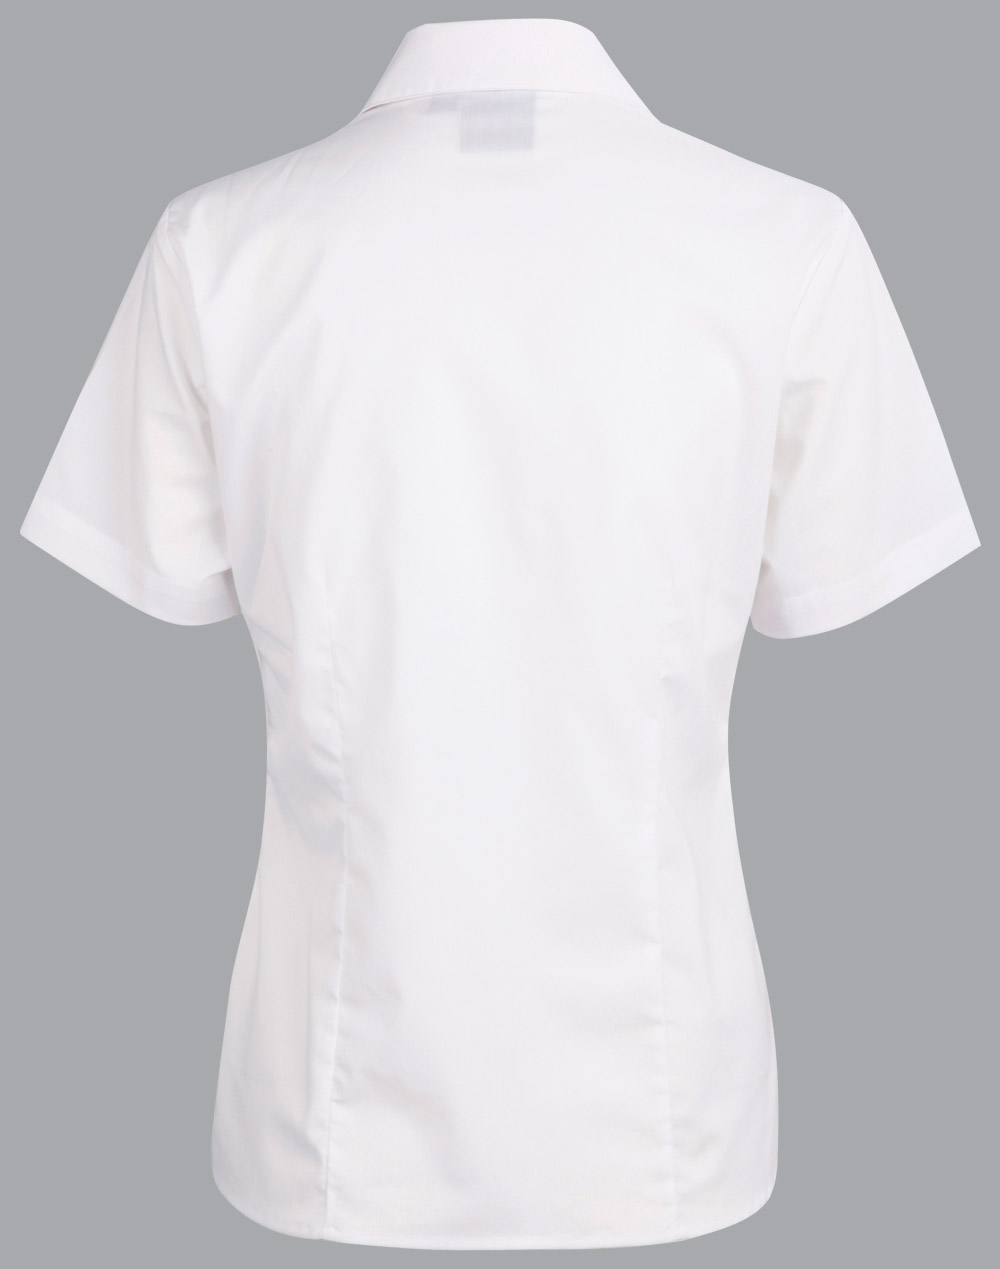 https://s3-ap-southeast-1.amazonaws.com/ws-imgs/BUSINESSSHIRTS/BS07S_White_Back.jpg